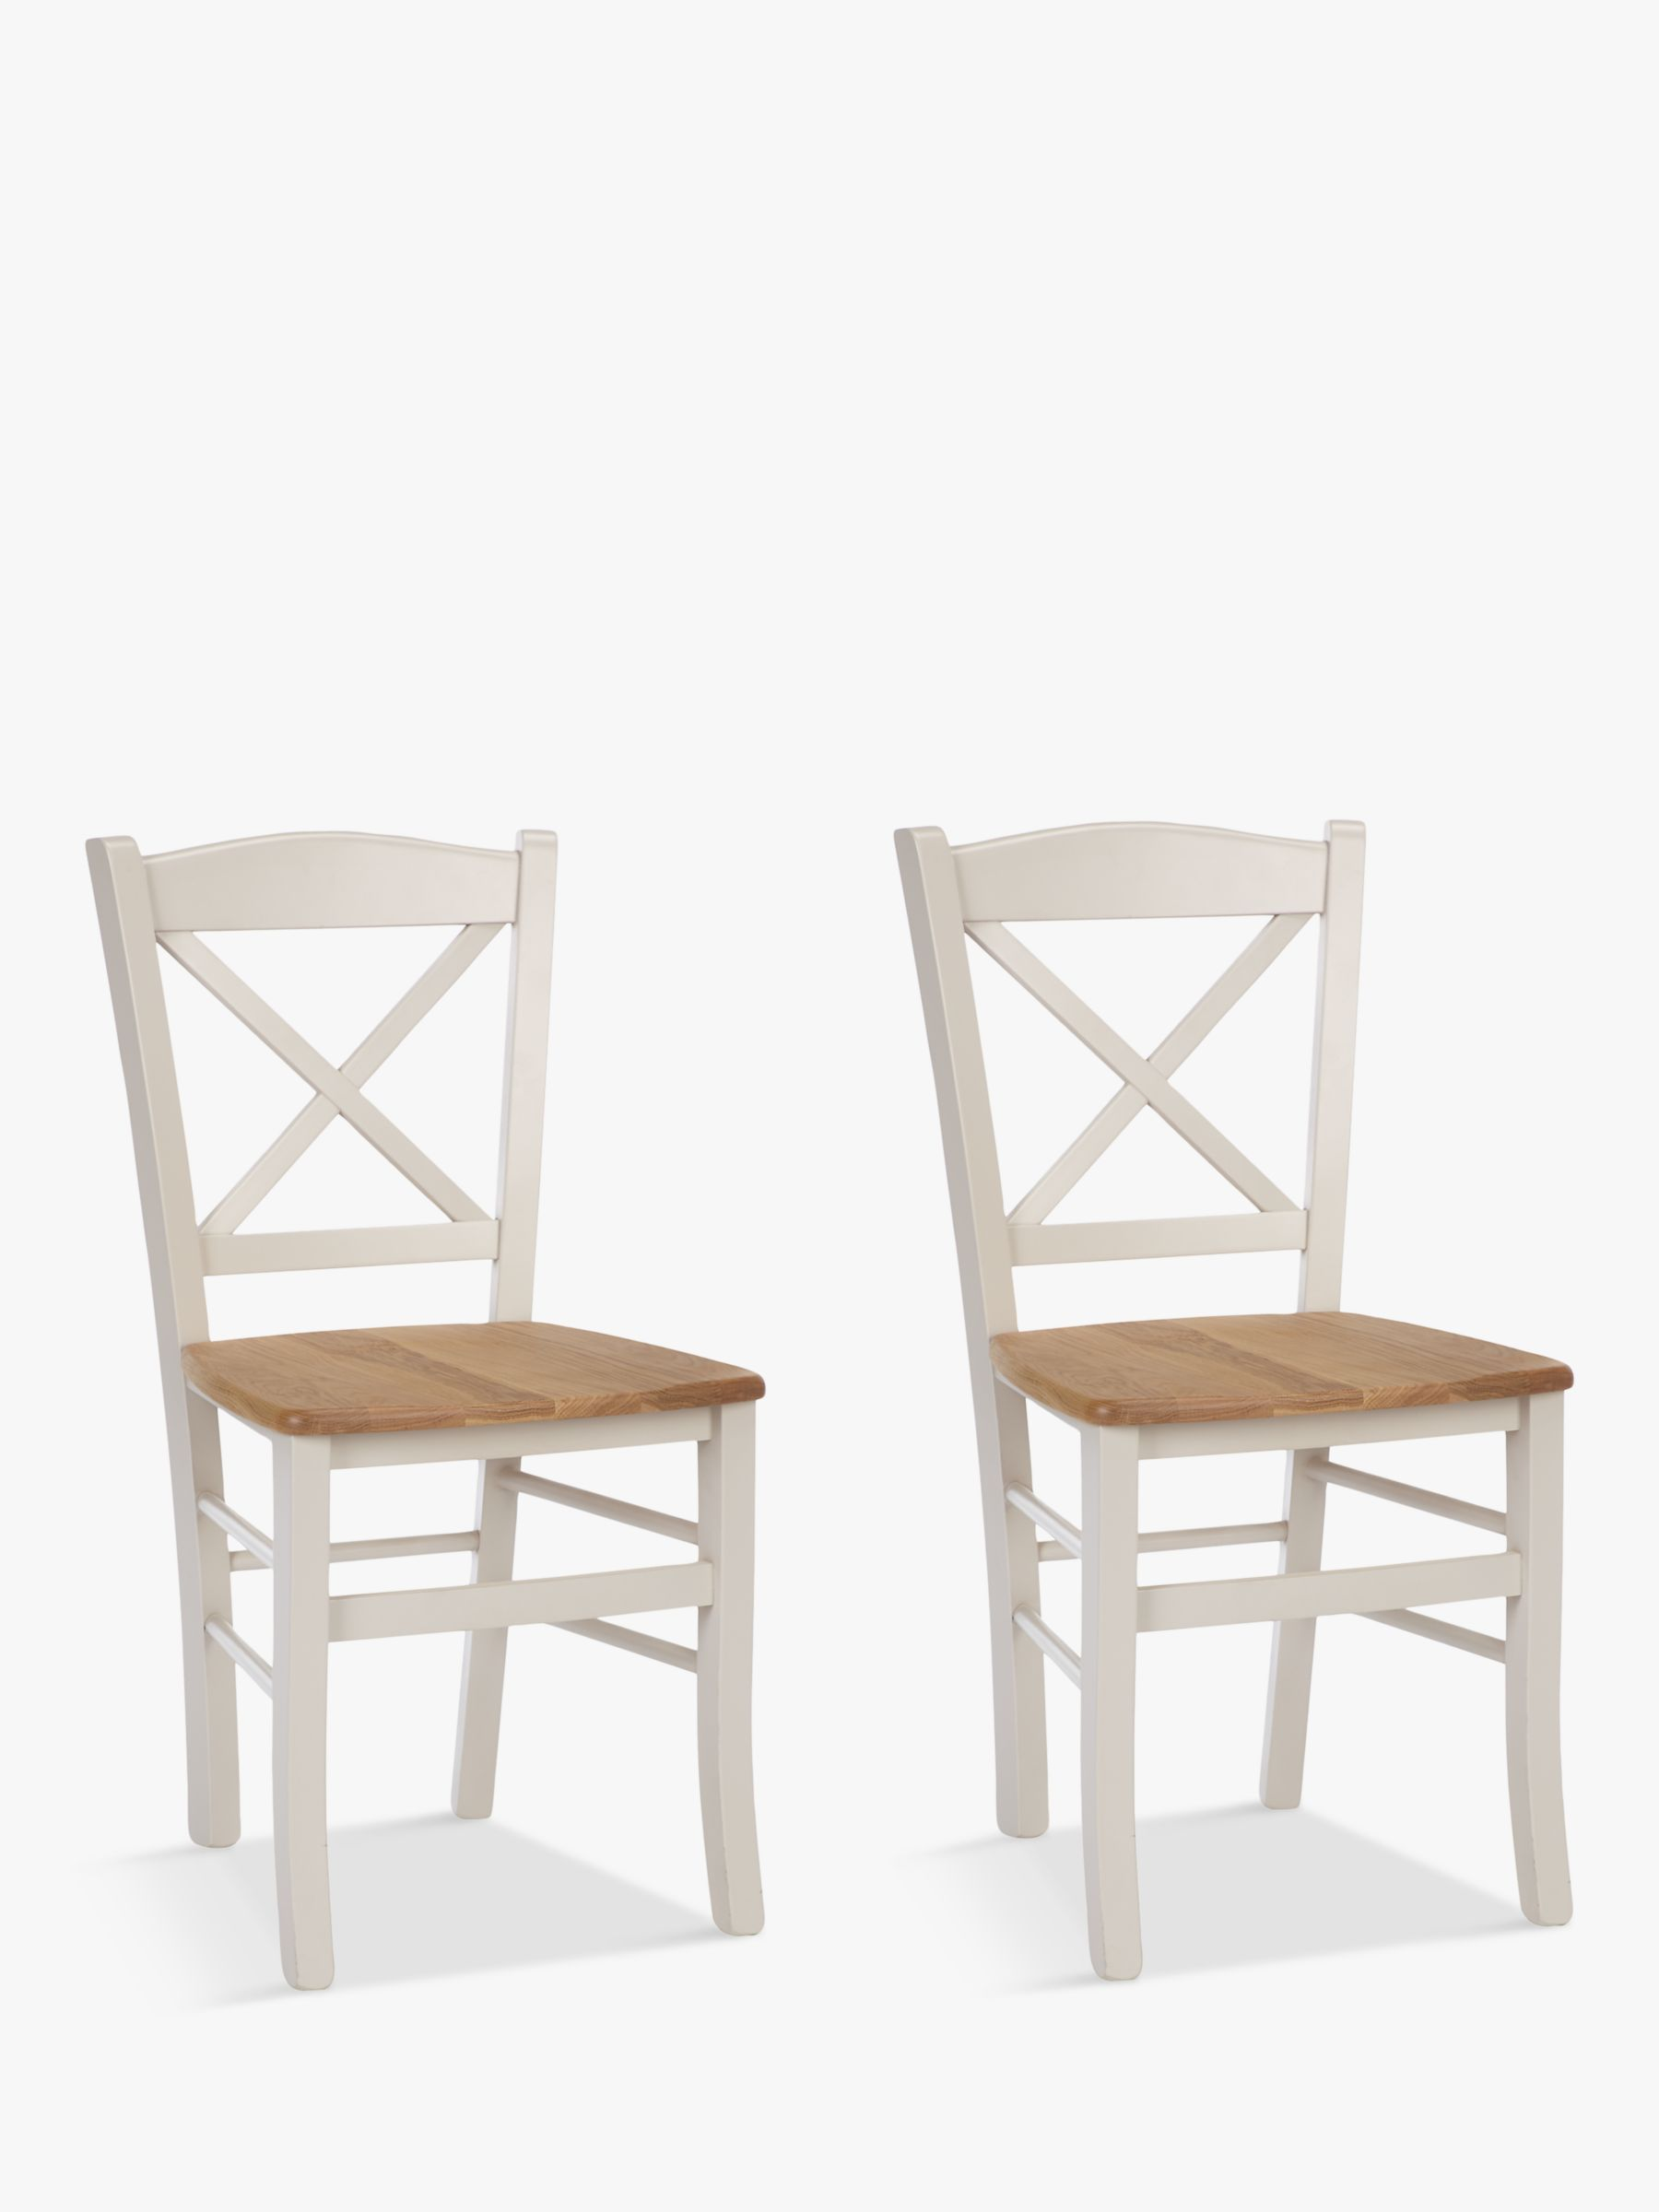 ANYDAY John Lewis & Partners Clayton Dining Chairs, Set of 2, FSC-Certified